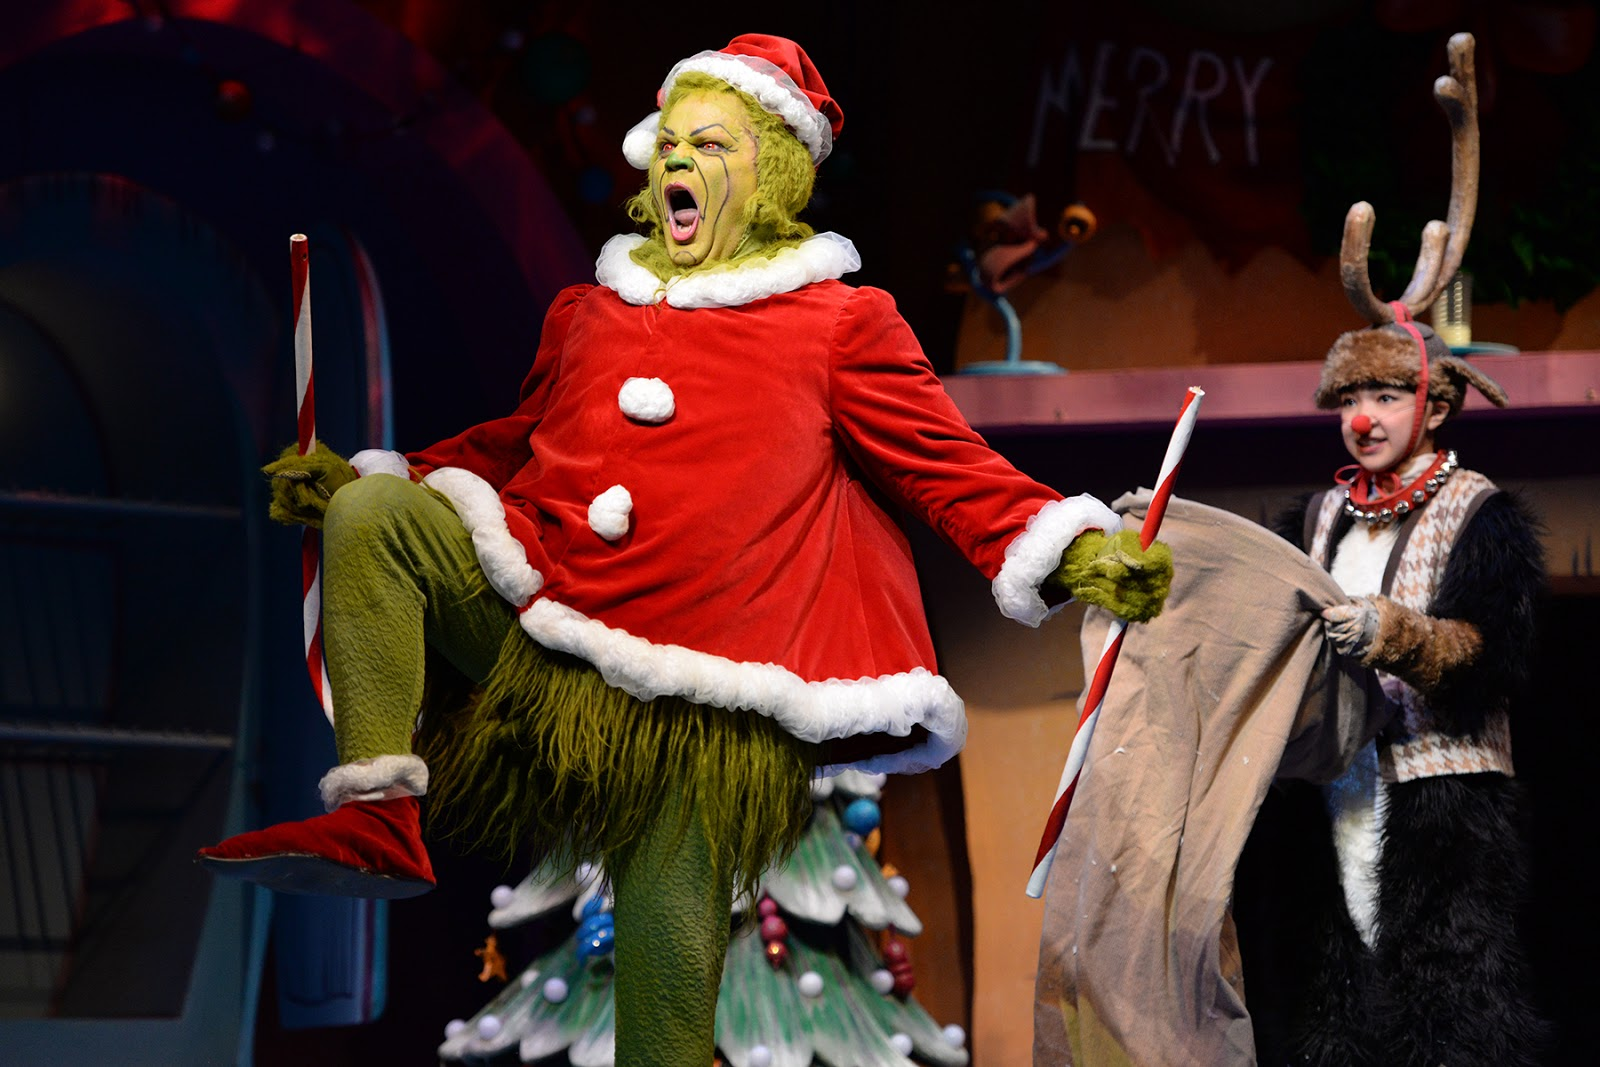 How The Grinch Stole Christmas Whos.Compendium How The Grinch Stole Christmas Steals The Show